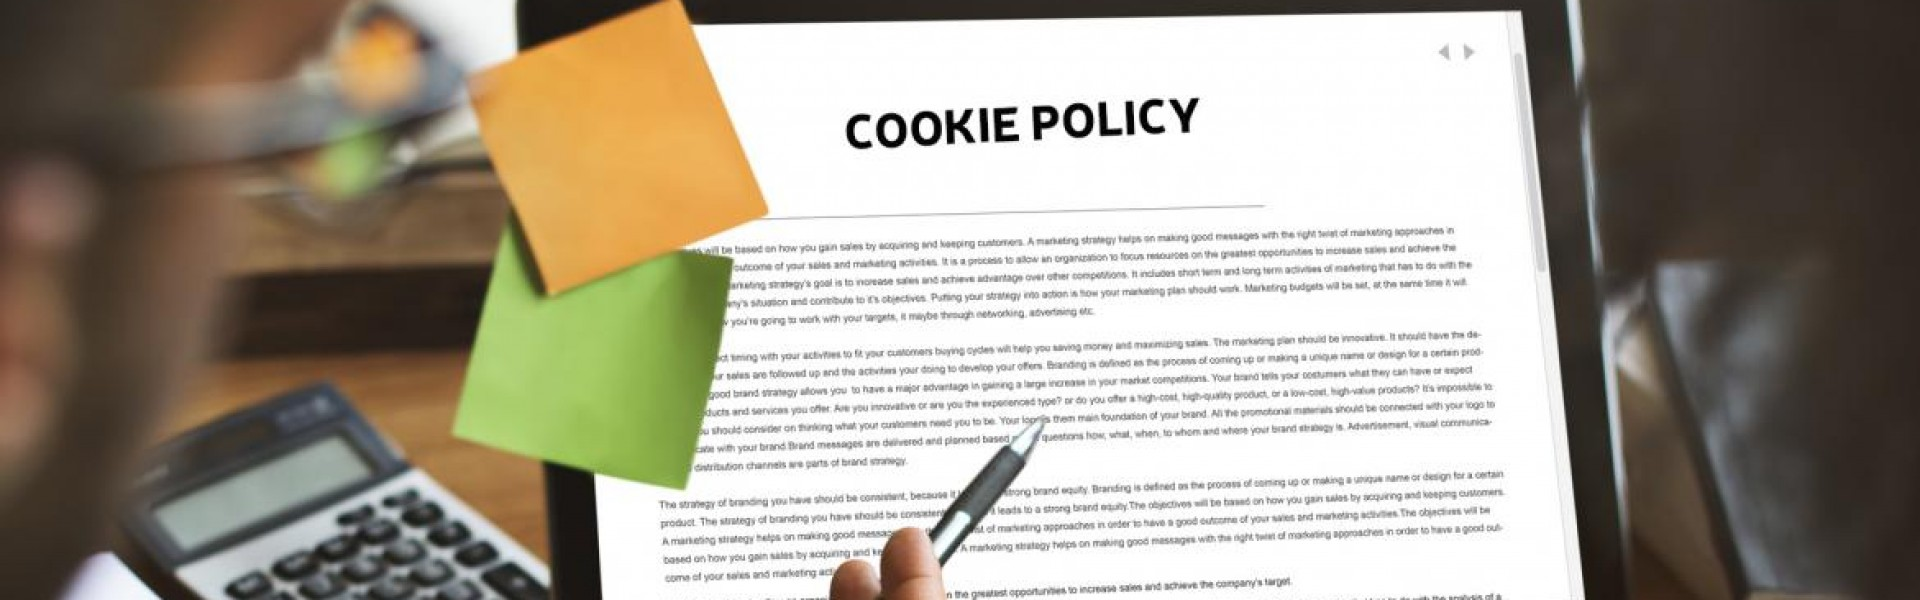 Cookies Policy - Rinaudo Team Service